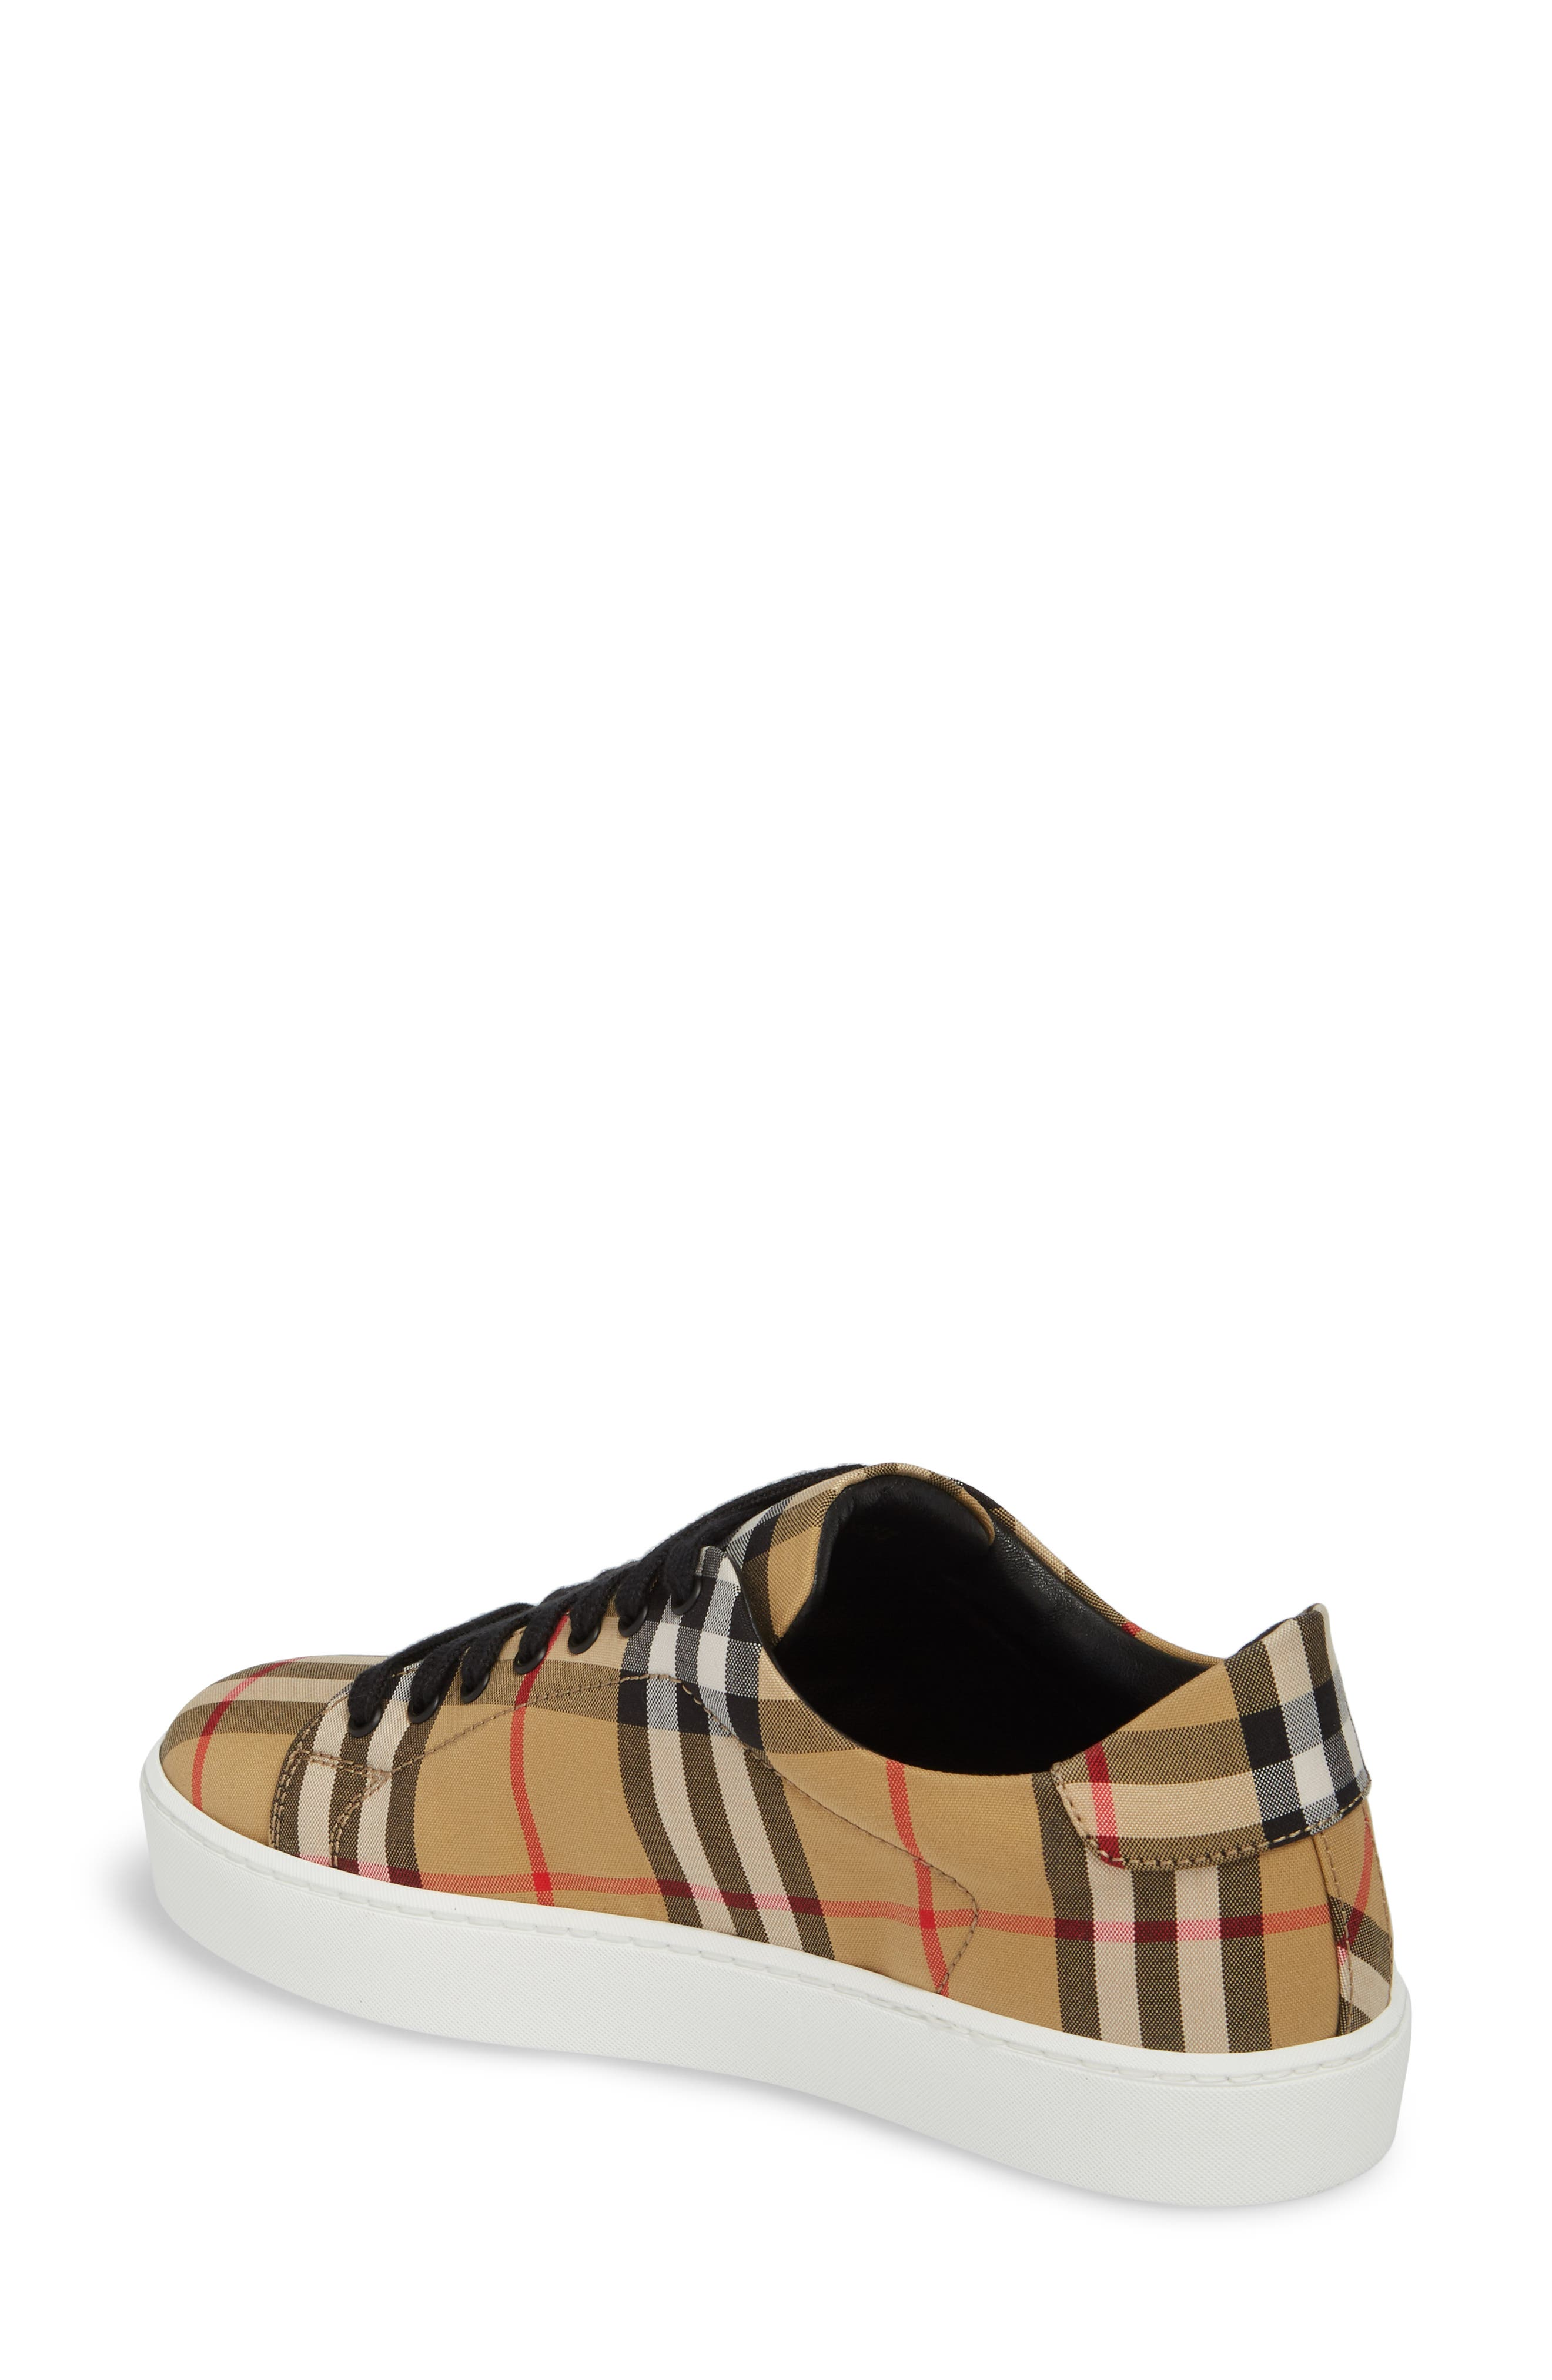 Westford Check Sneaker,                             Alternate thumbnail 2, color,                             Antique Yellow